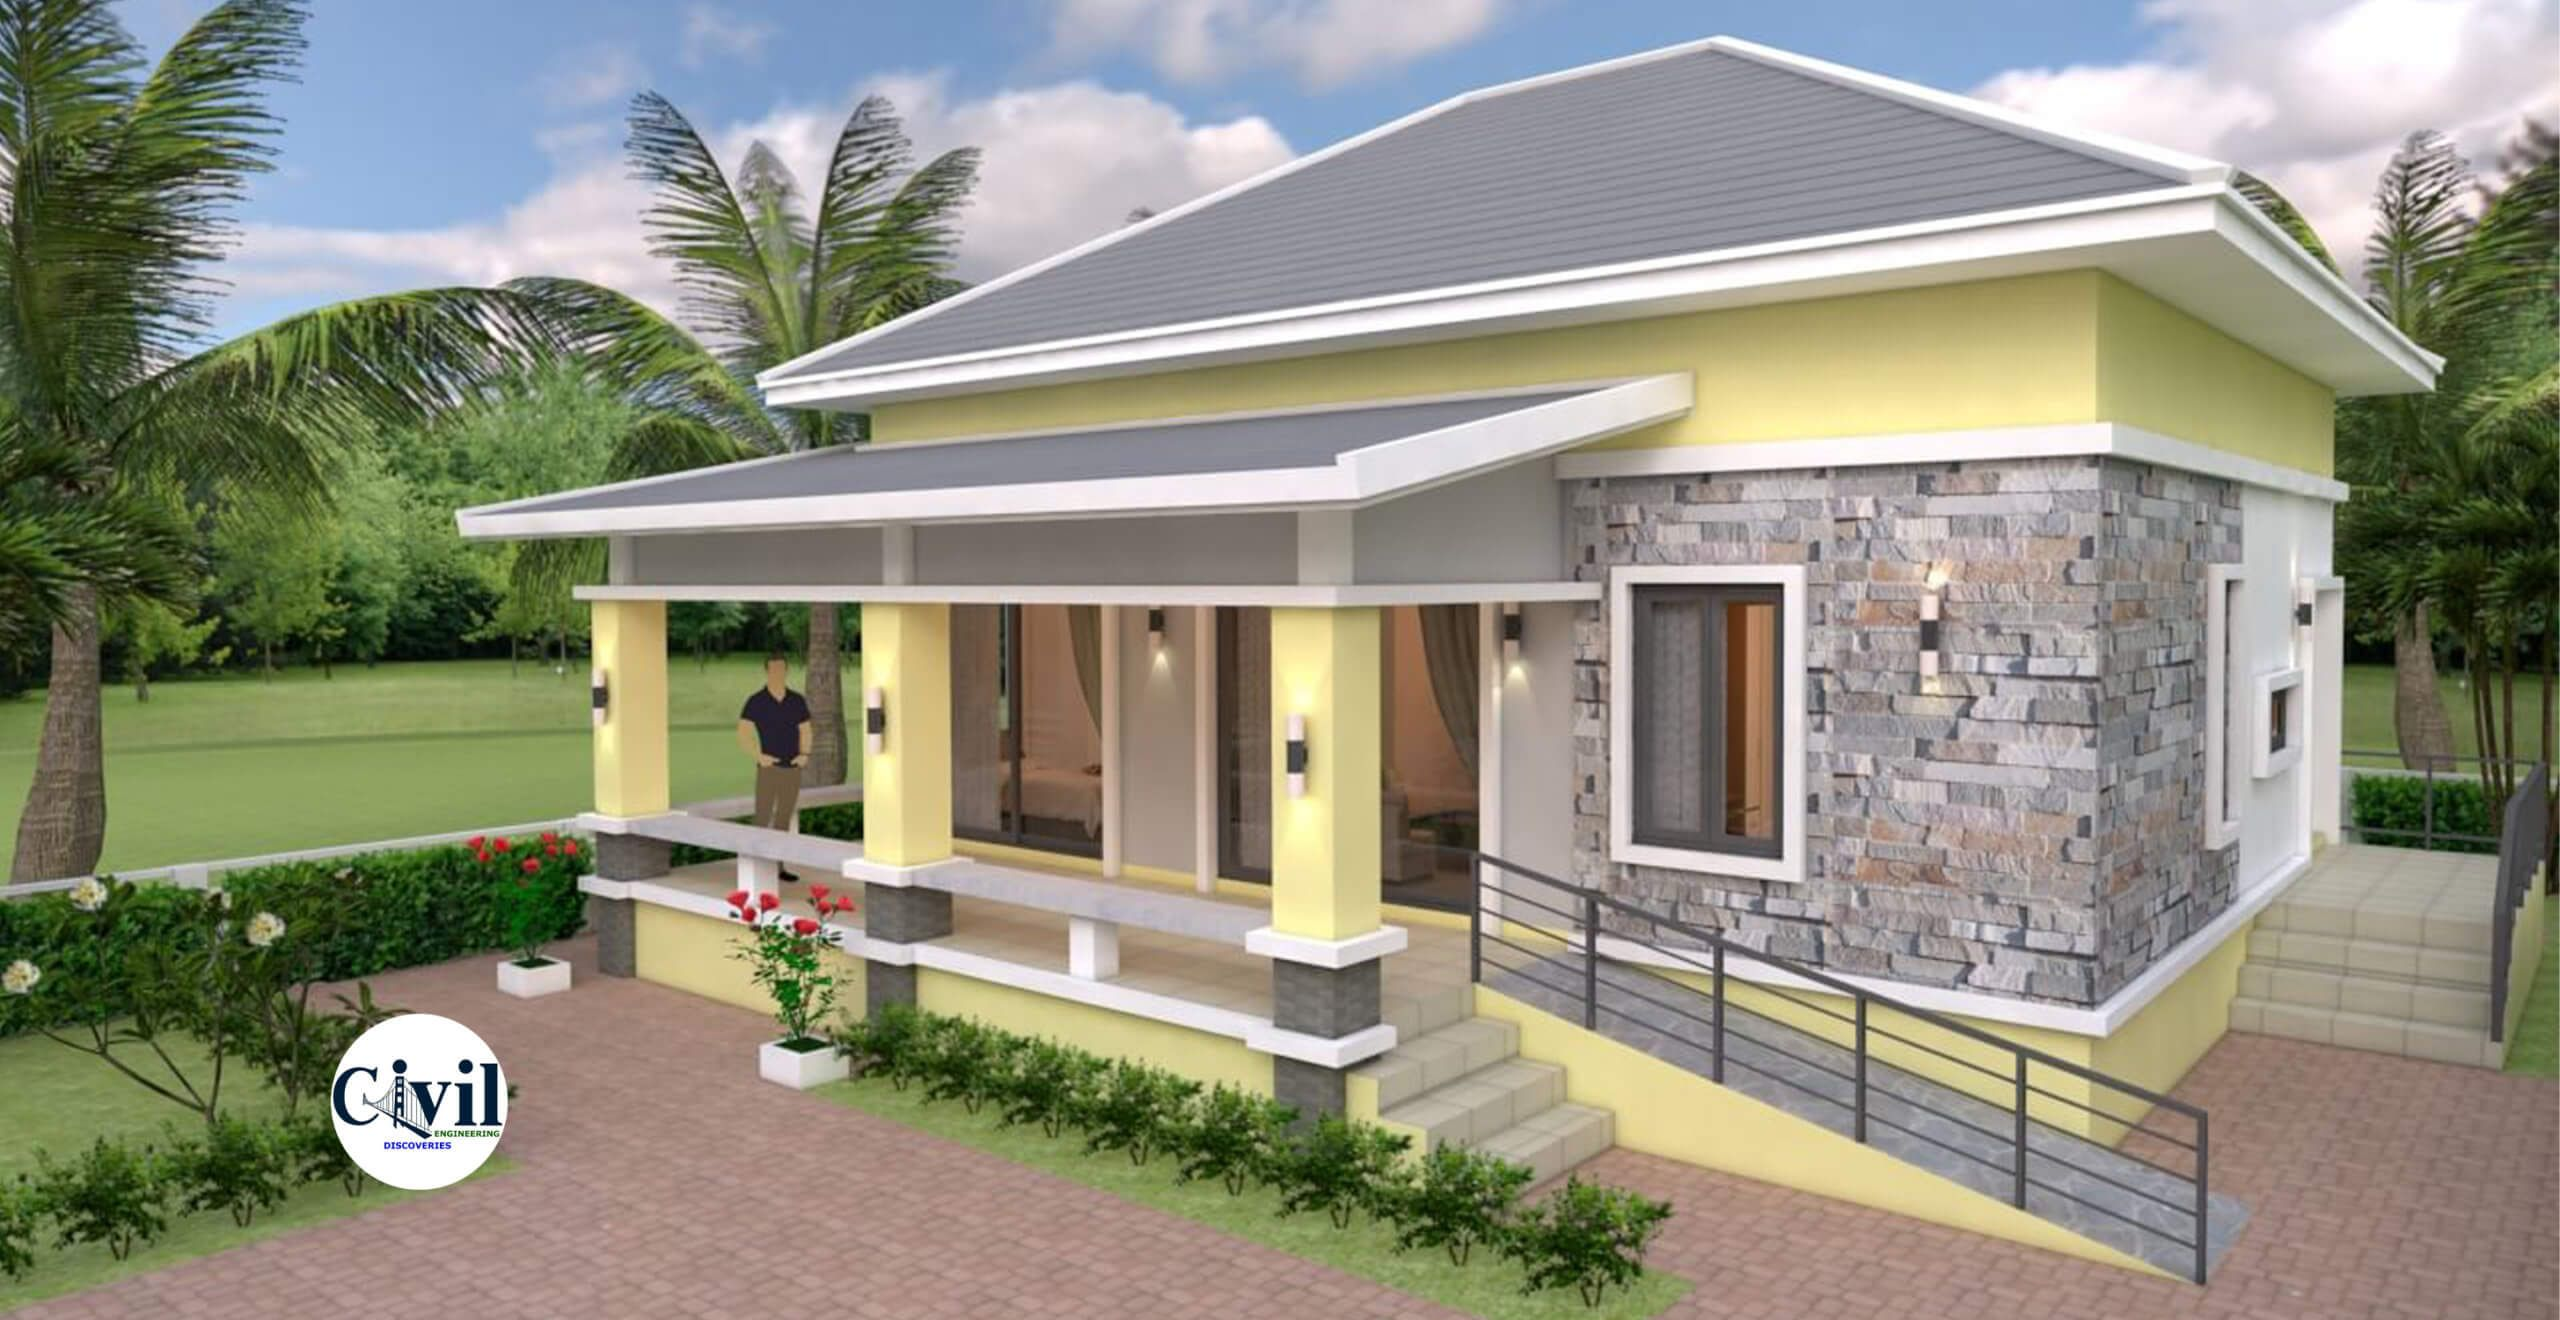 House Design 10 10 With 3 Bedrooms With Hip Roof Engineering Discoveries In 2020 Unique House Design Two Story House Design Bungalow House Design